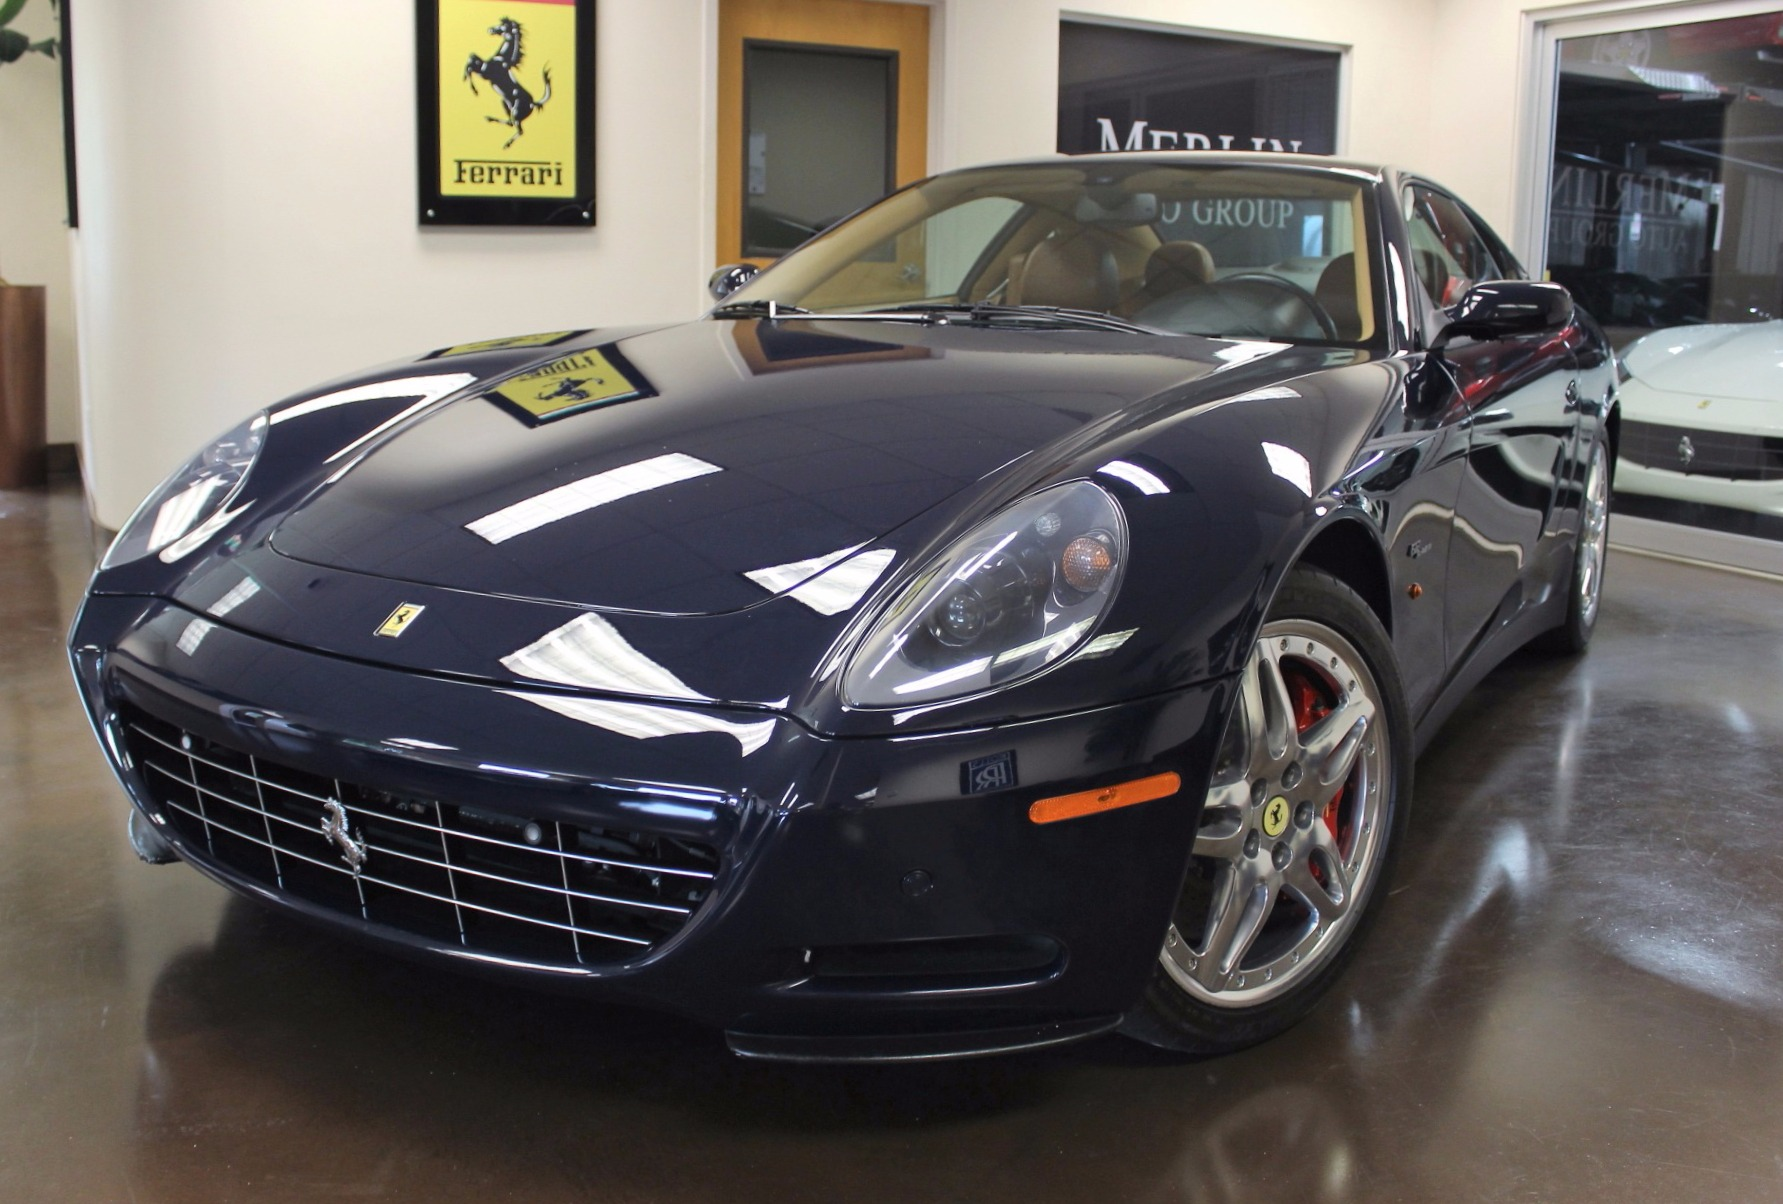 used 2008 ferrari 612 stock p3631 ultra luxury car from merlin auto group. Black Bedroom Furniture Sets. Home Design Ideas